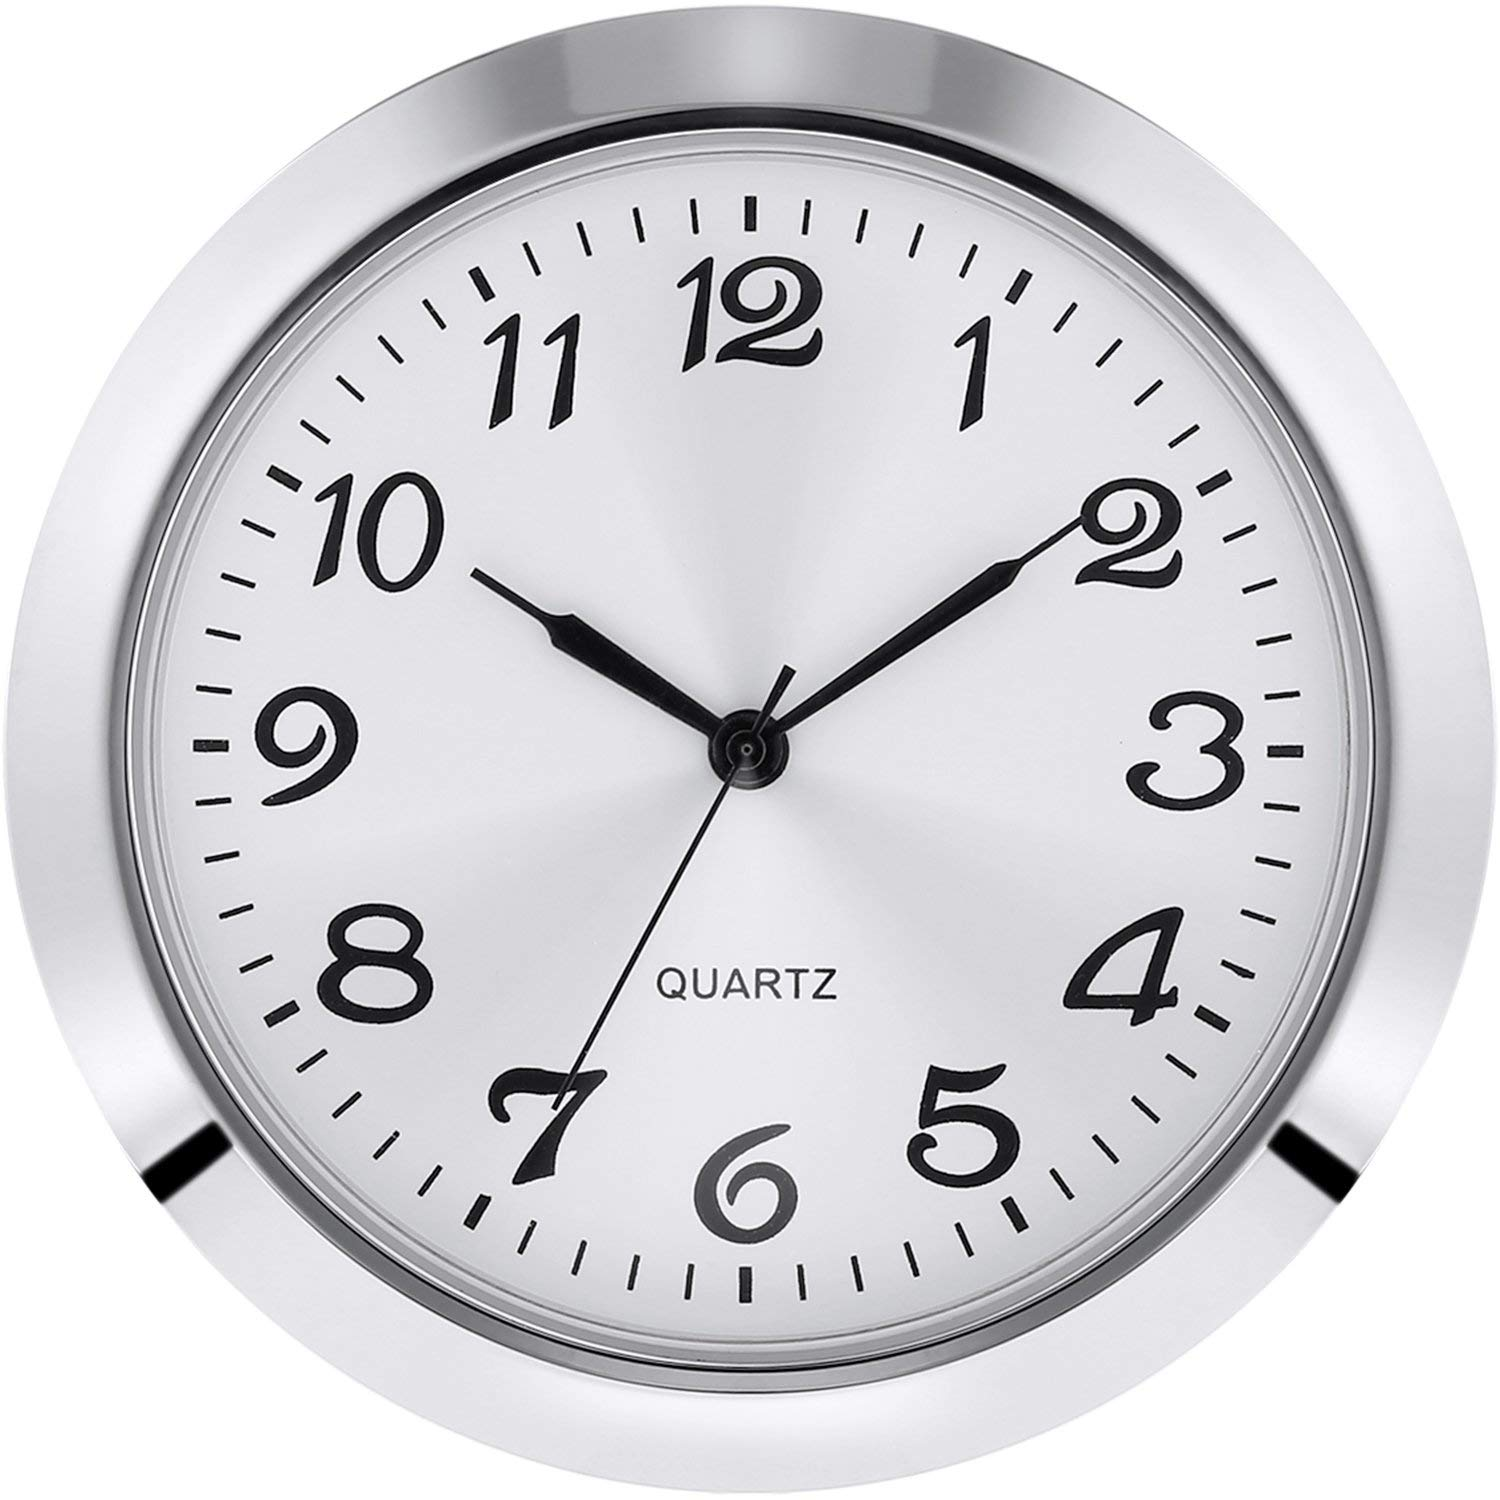 Oval Clock Face Cheap Oval Clock Insert Find Oval Clock Insert Deals On Line At